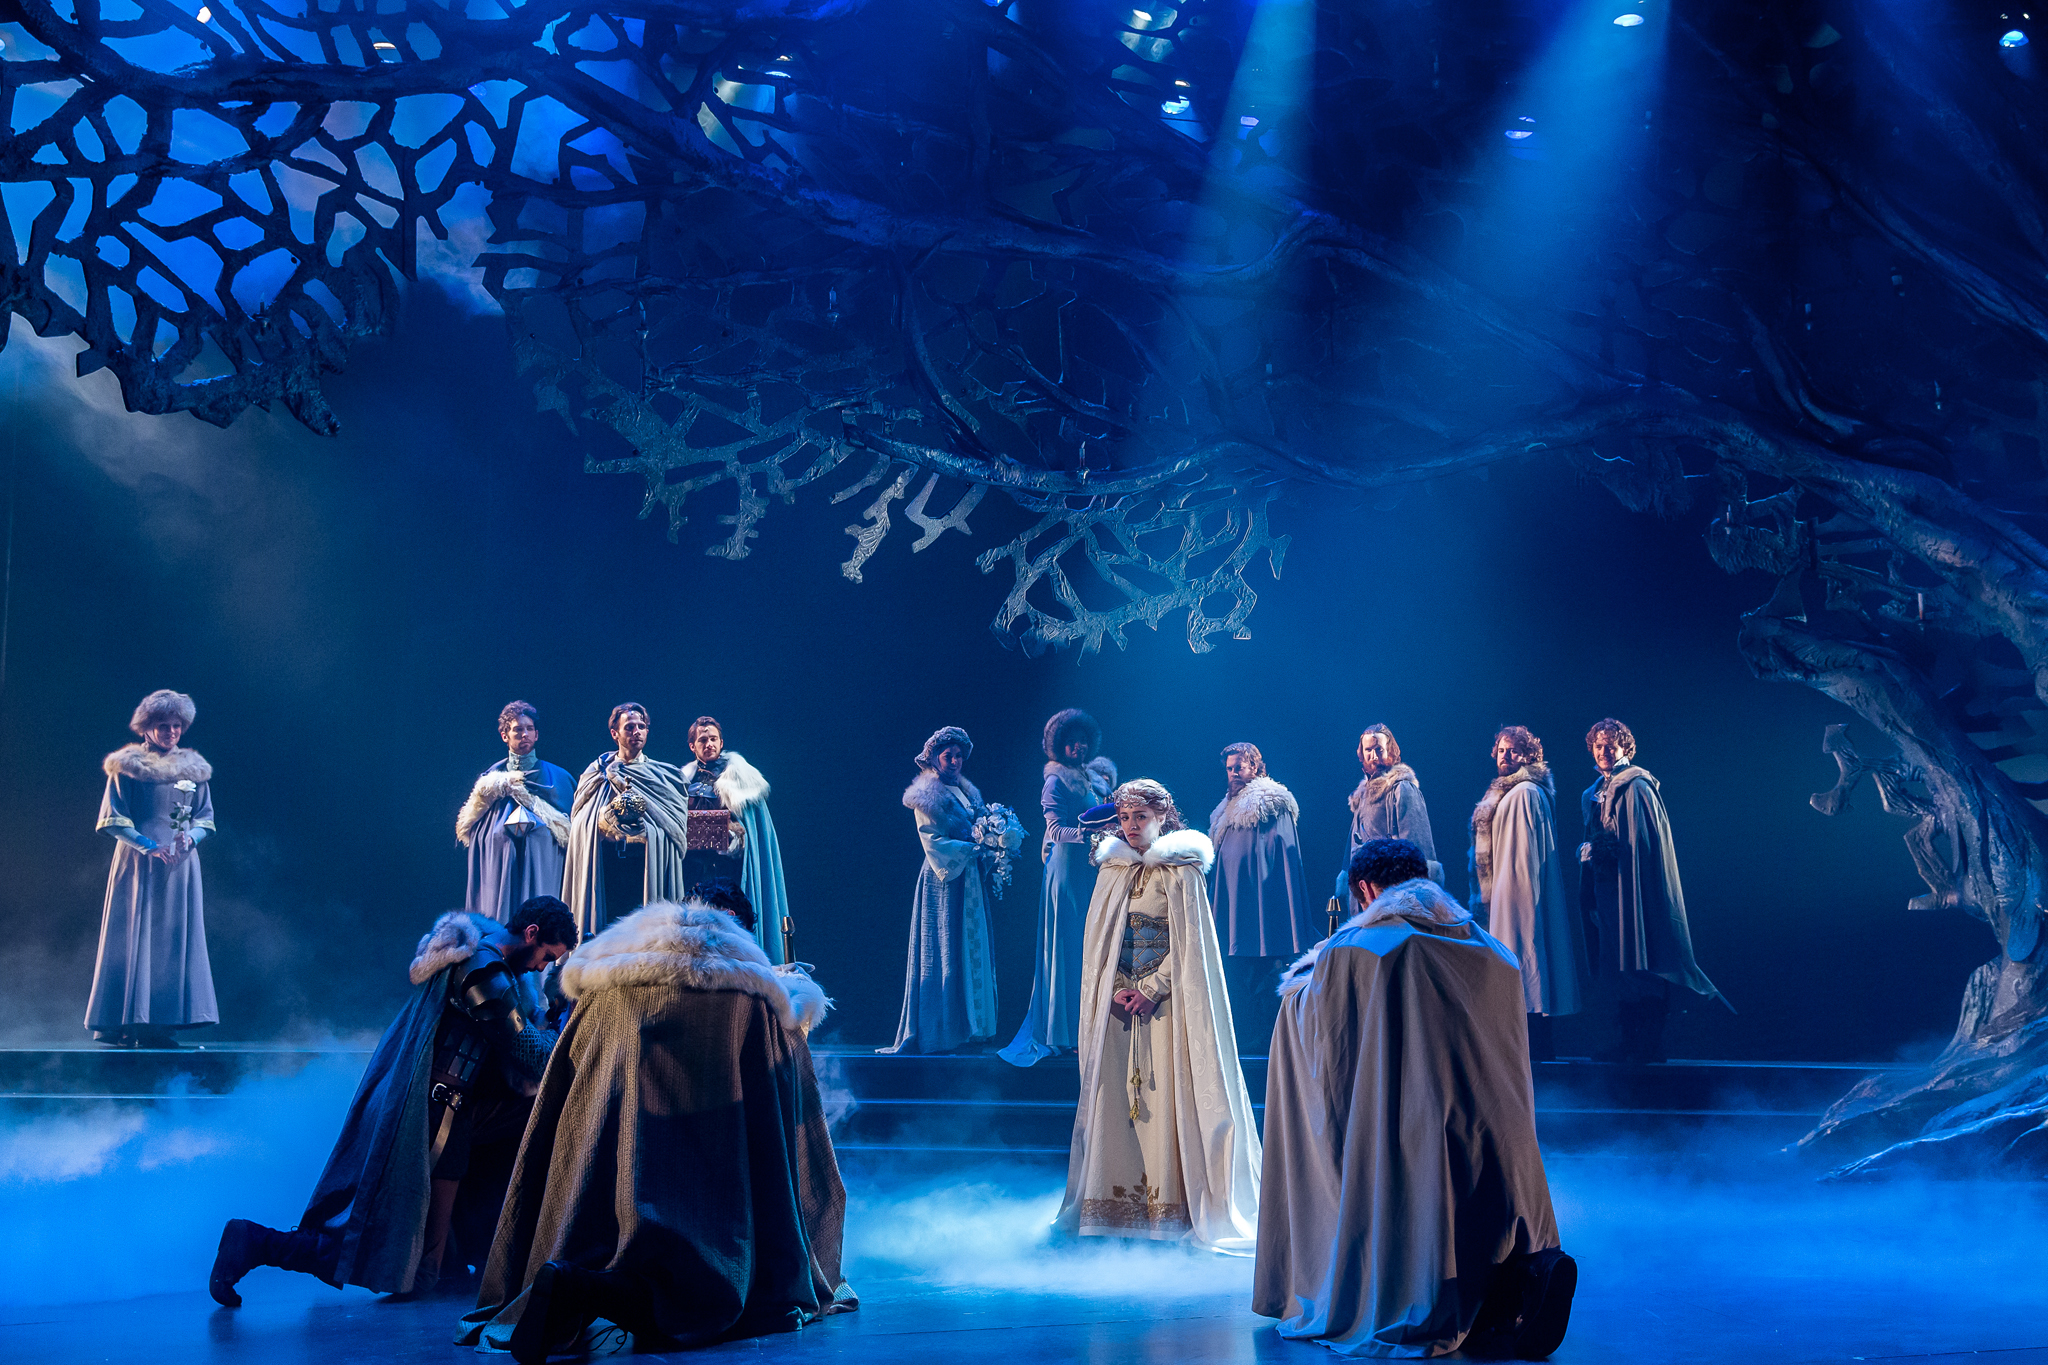 Camelot at Drury Lane Theatre